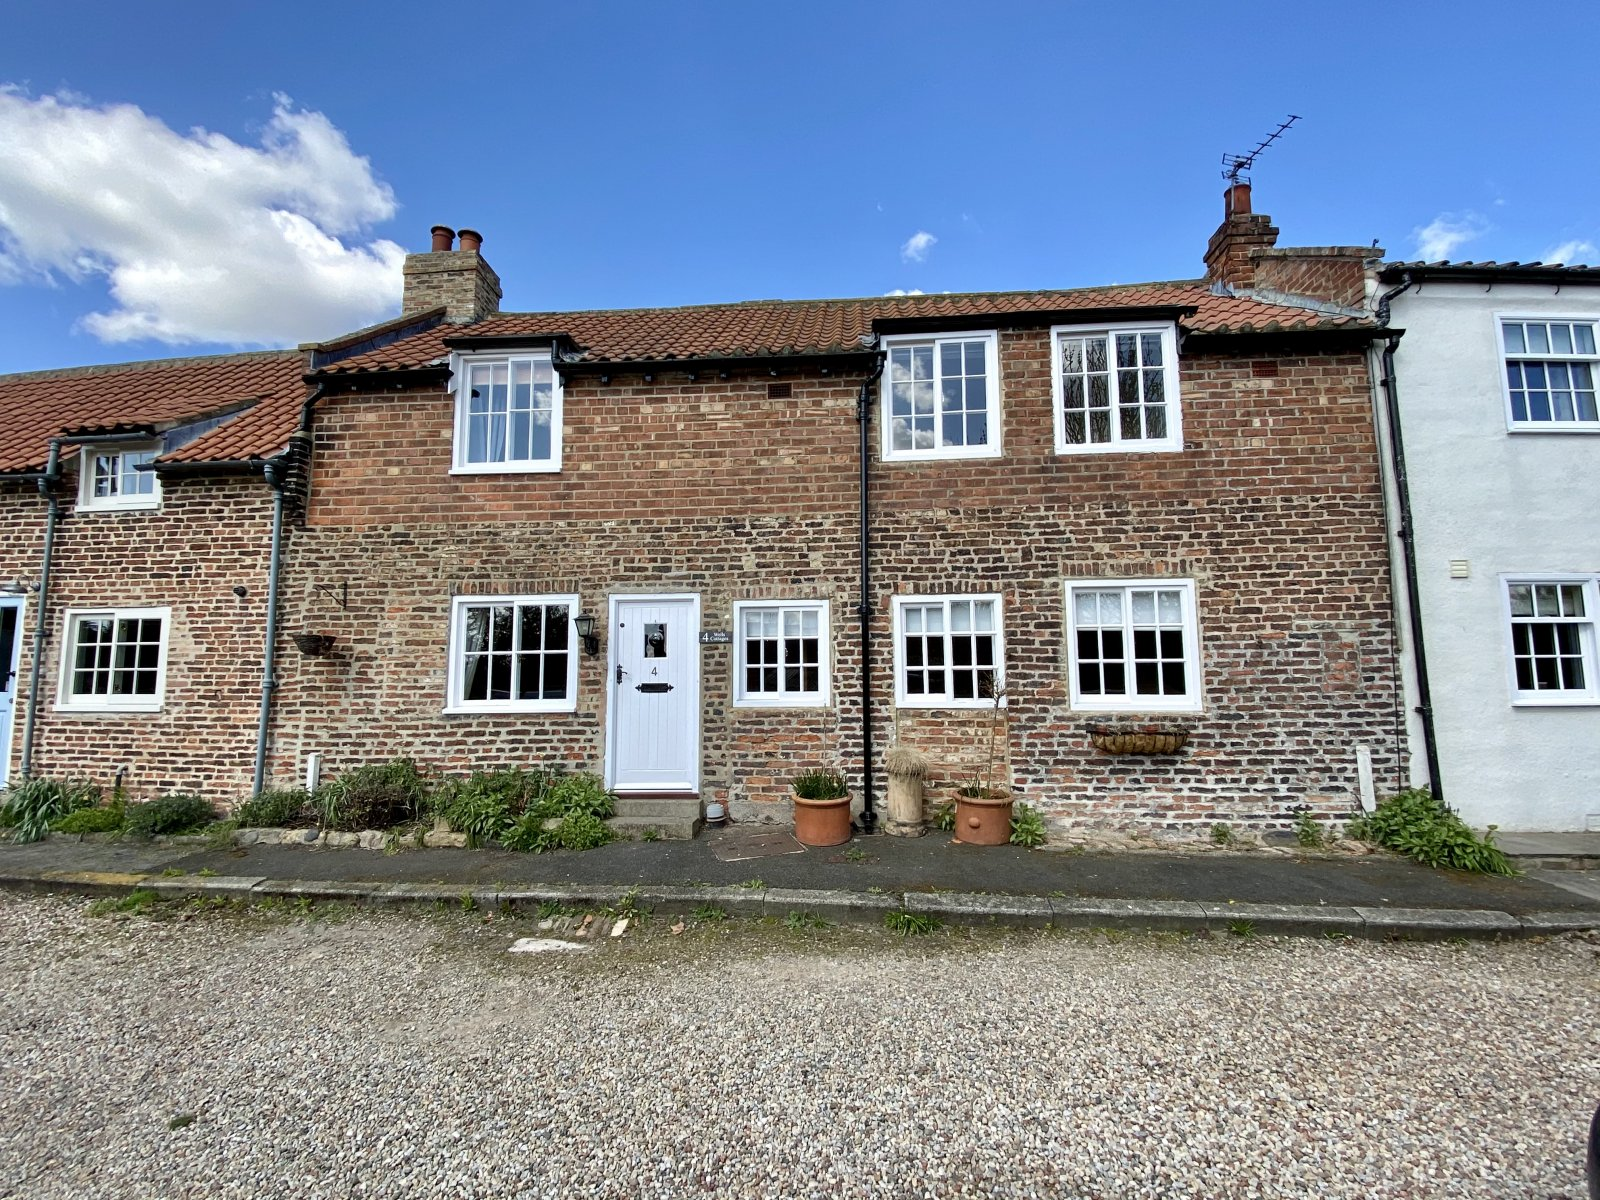 3 bed house for sale in Wells Cottages, Egglescliffe - Property Image 1